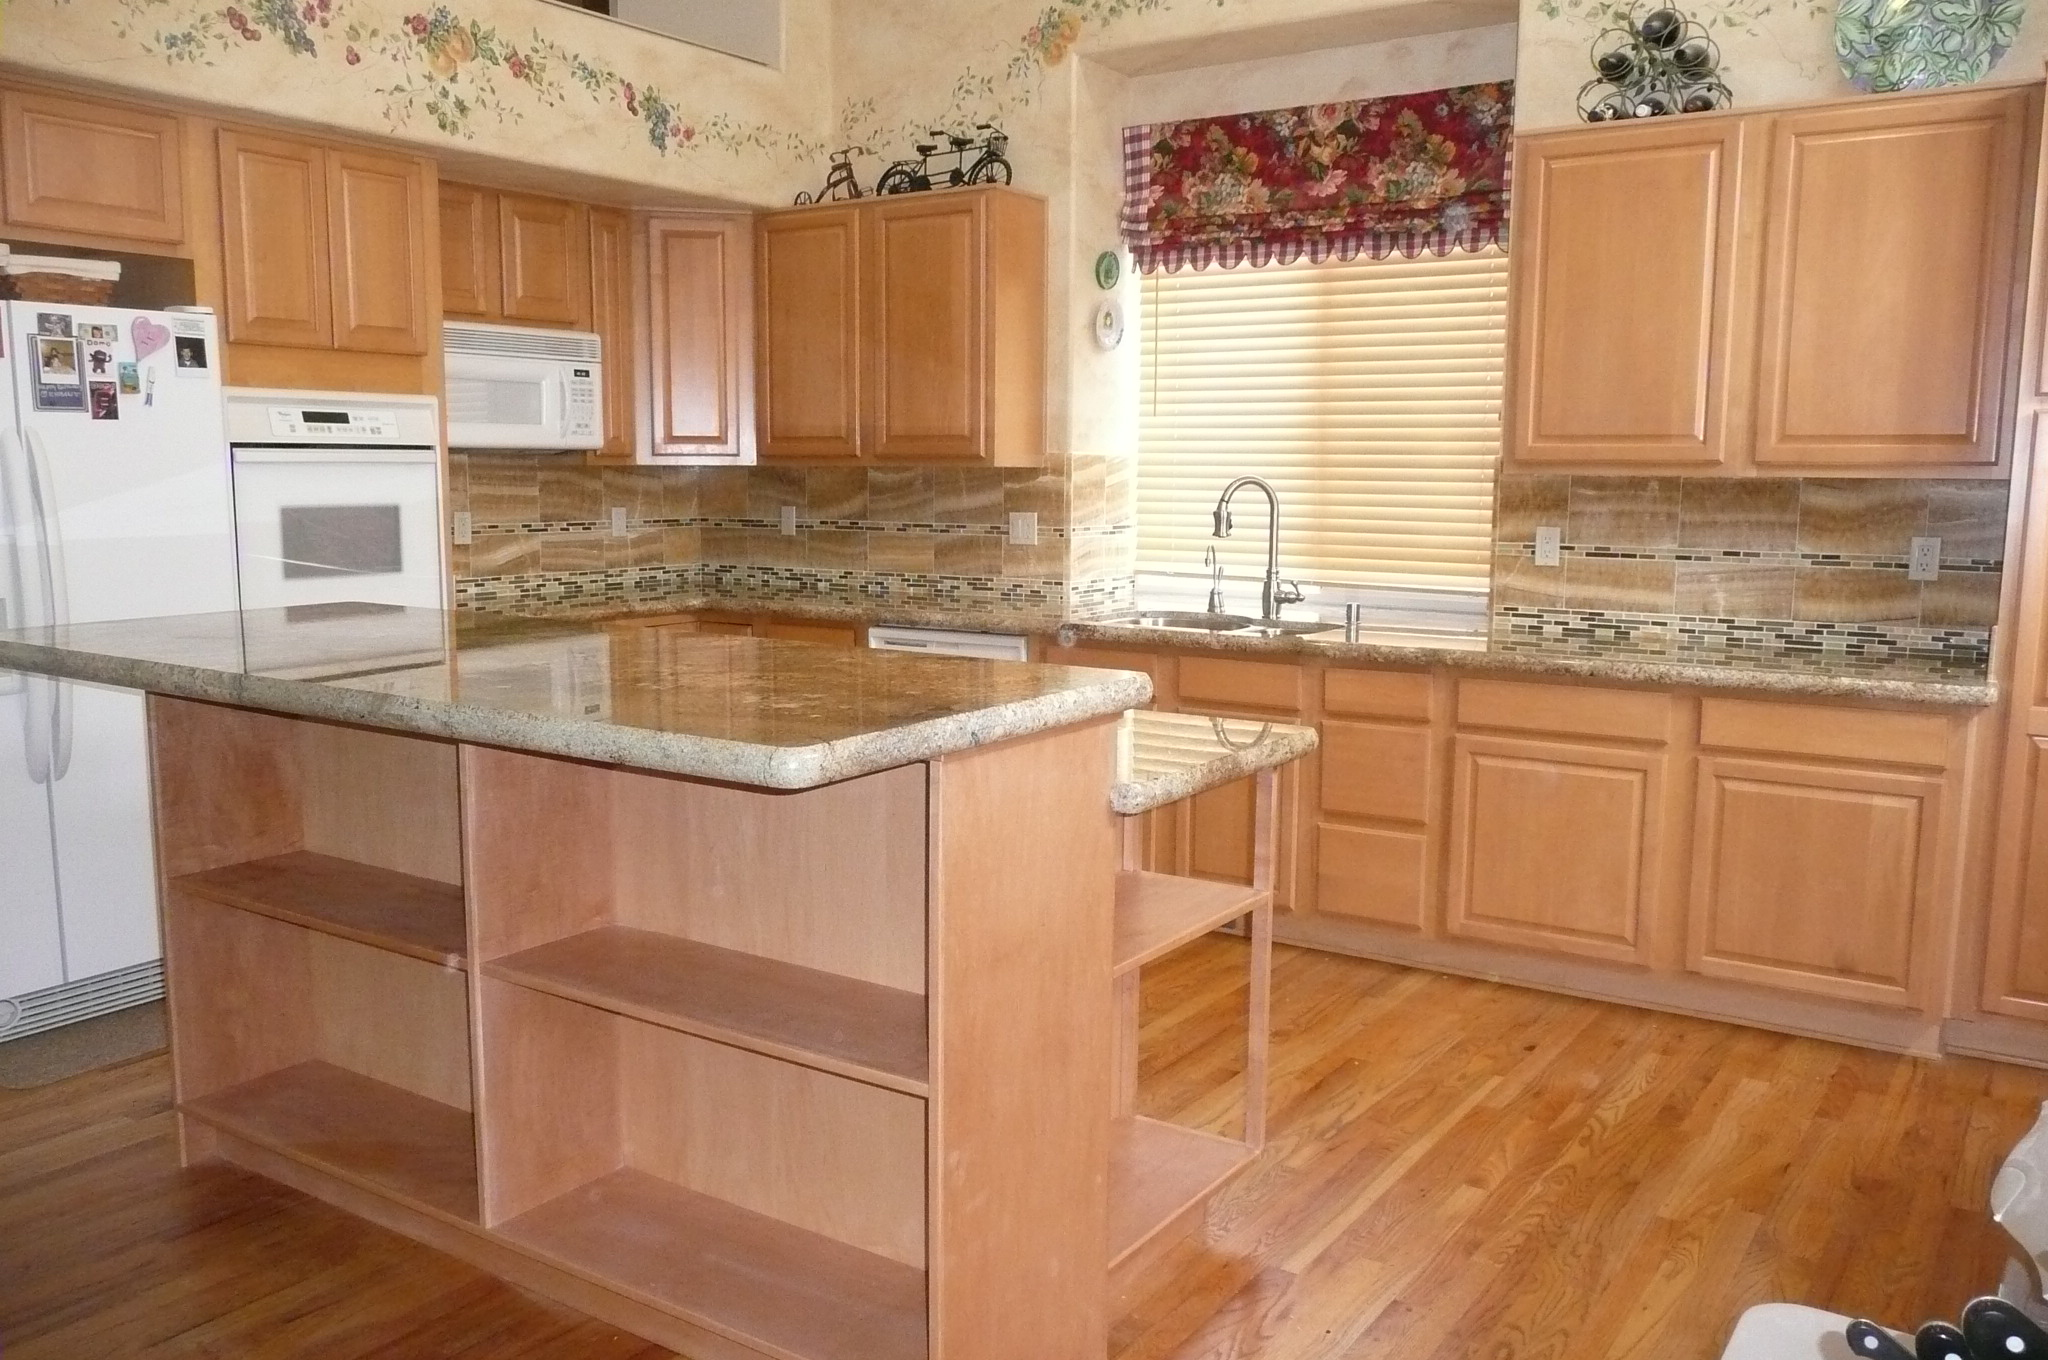 7 Things to Consider Before Refinishing Your Kitchen ...